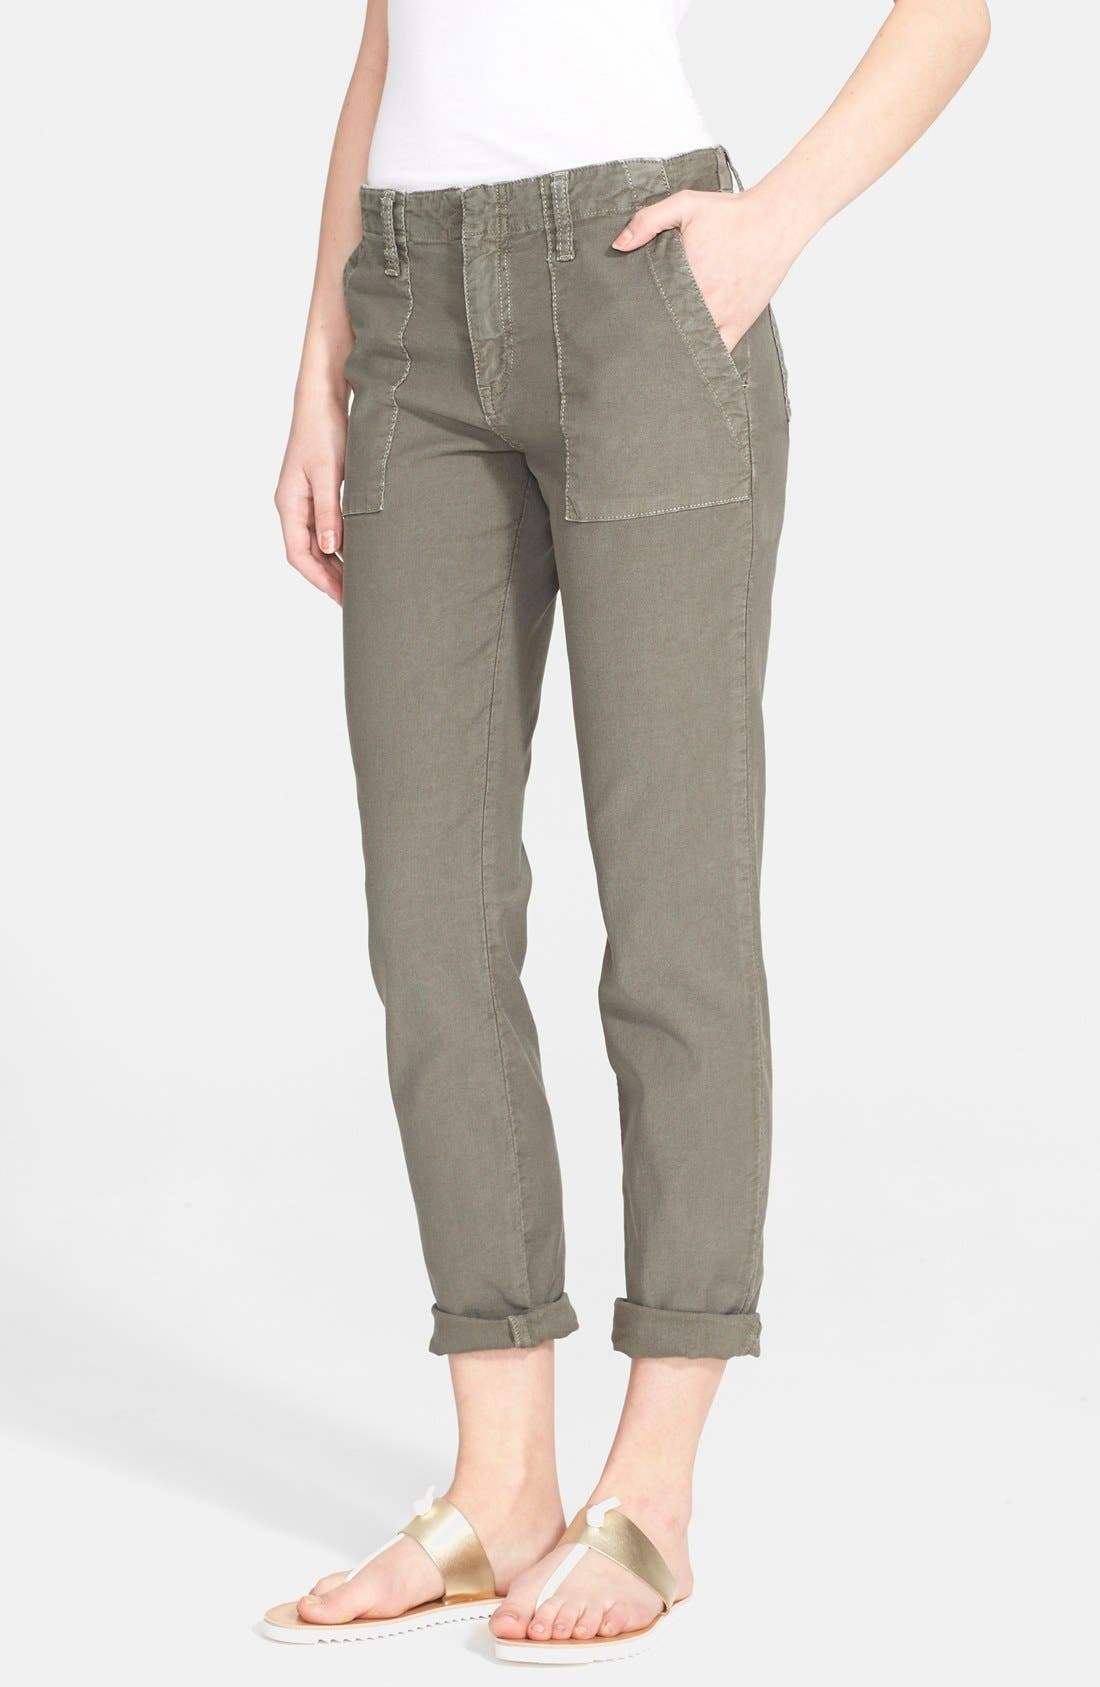 Painter Cotton & Linen Pants,                             Main thumbnail 1, color,                             Fatigue